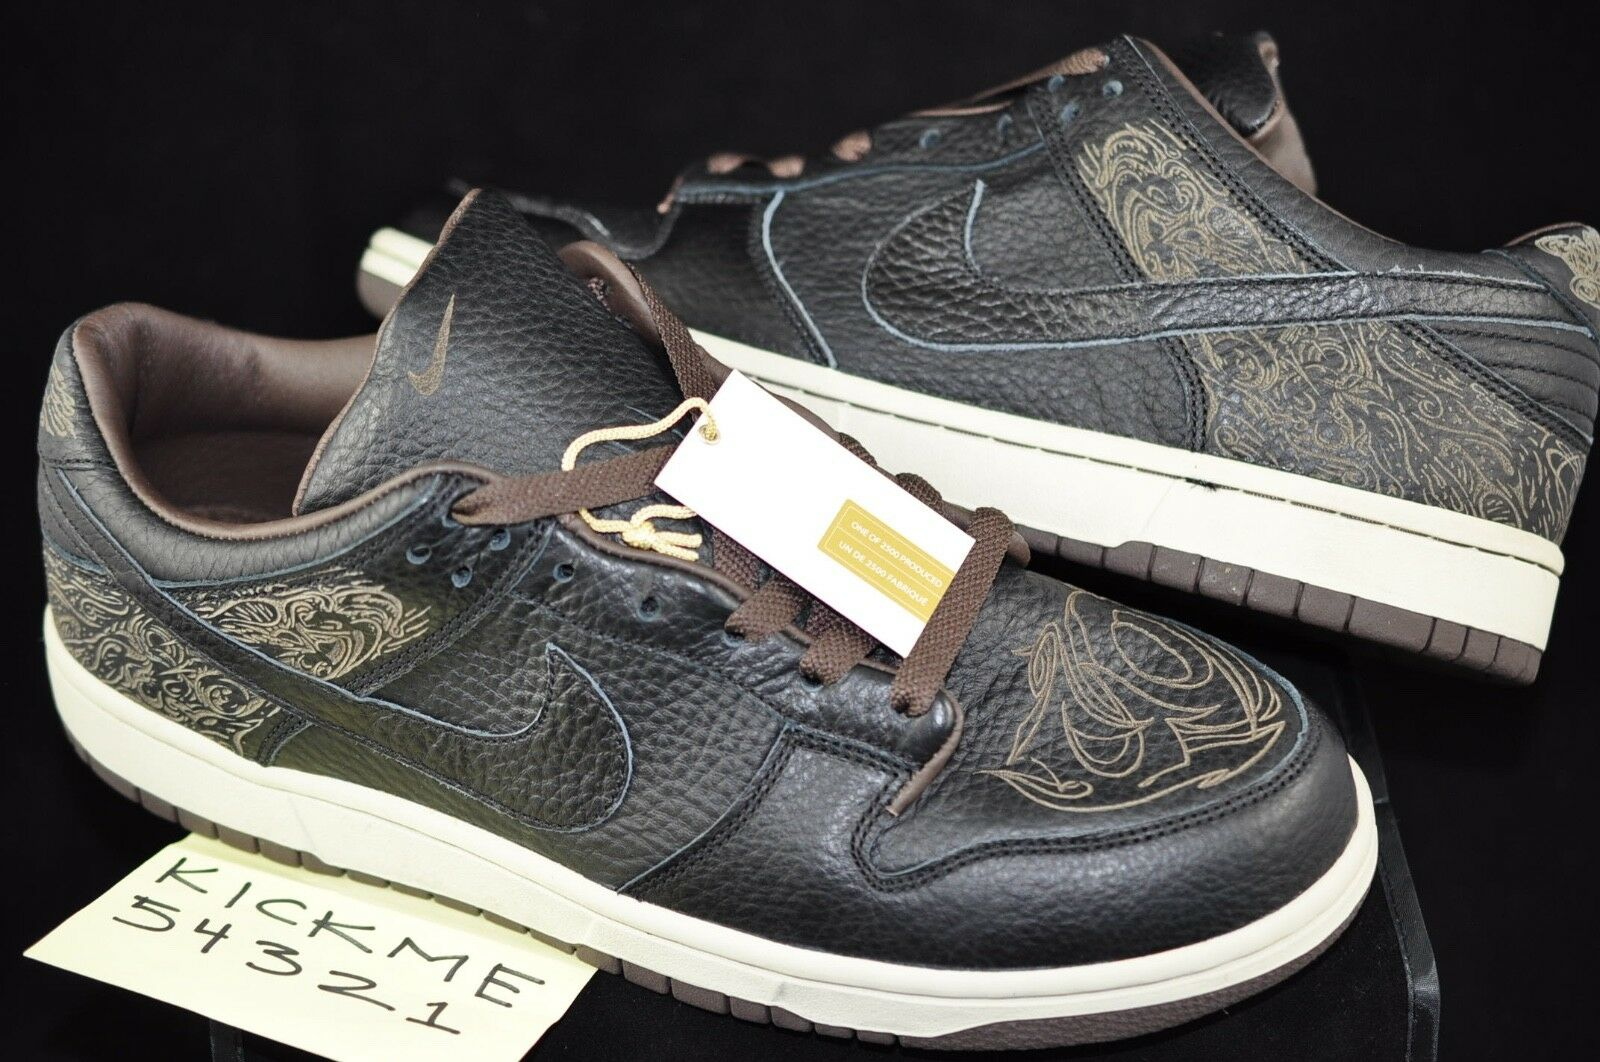 2003 NIKE DUNK LOW LASER PACK MICHAEL DESMOND 1 OF 2500 SIZE 10 NEW BLACK LAZER